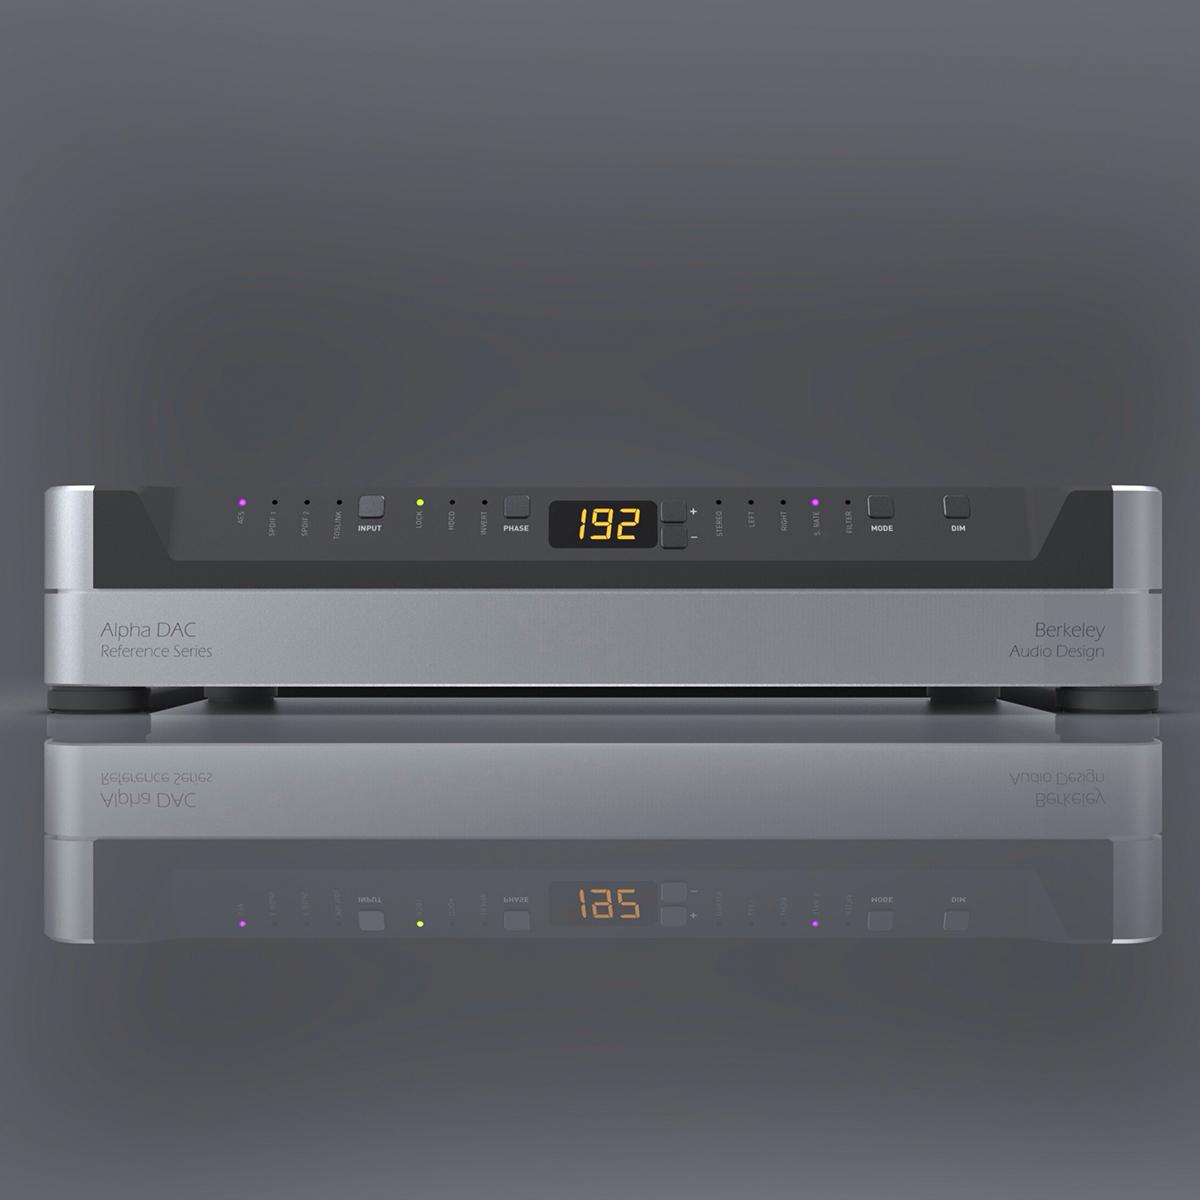 Berkeley ALPHA DAC Reference Series